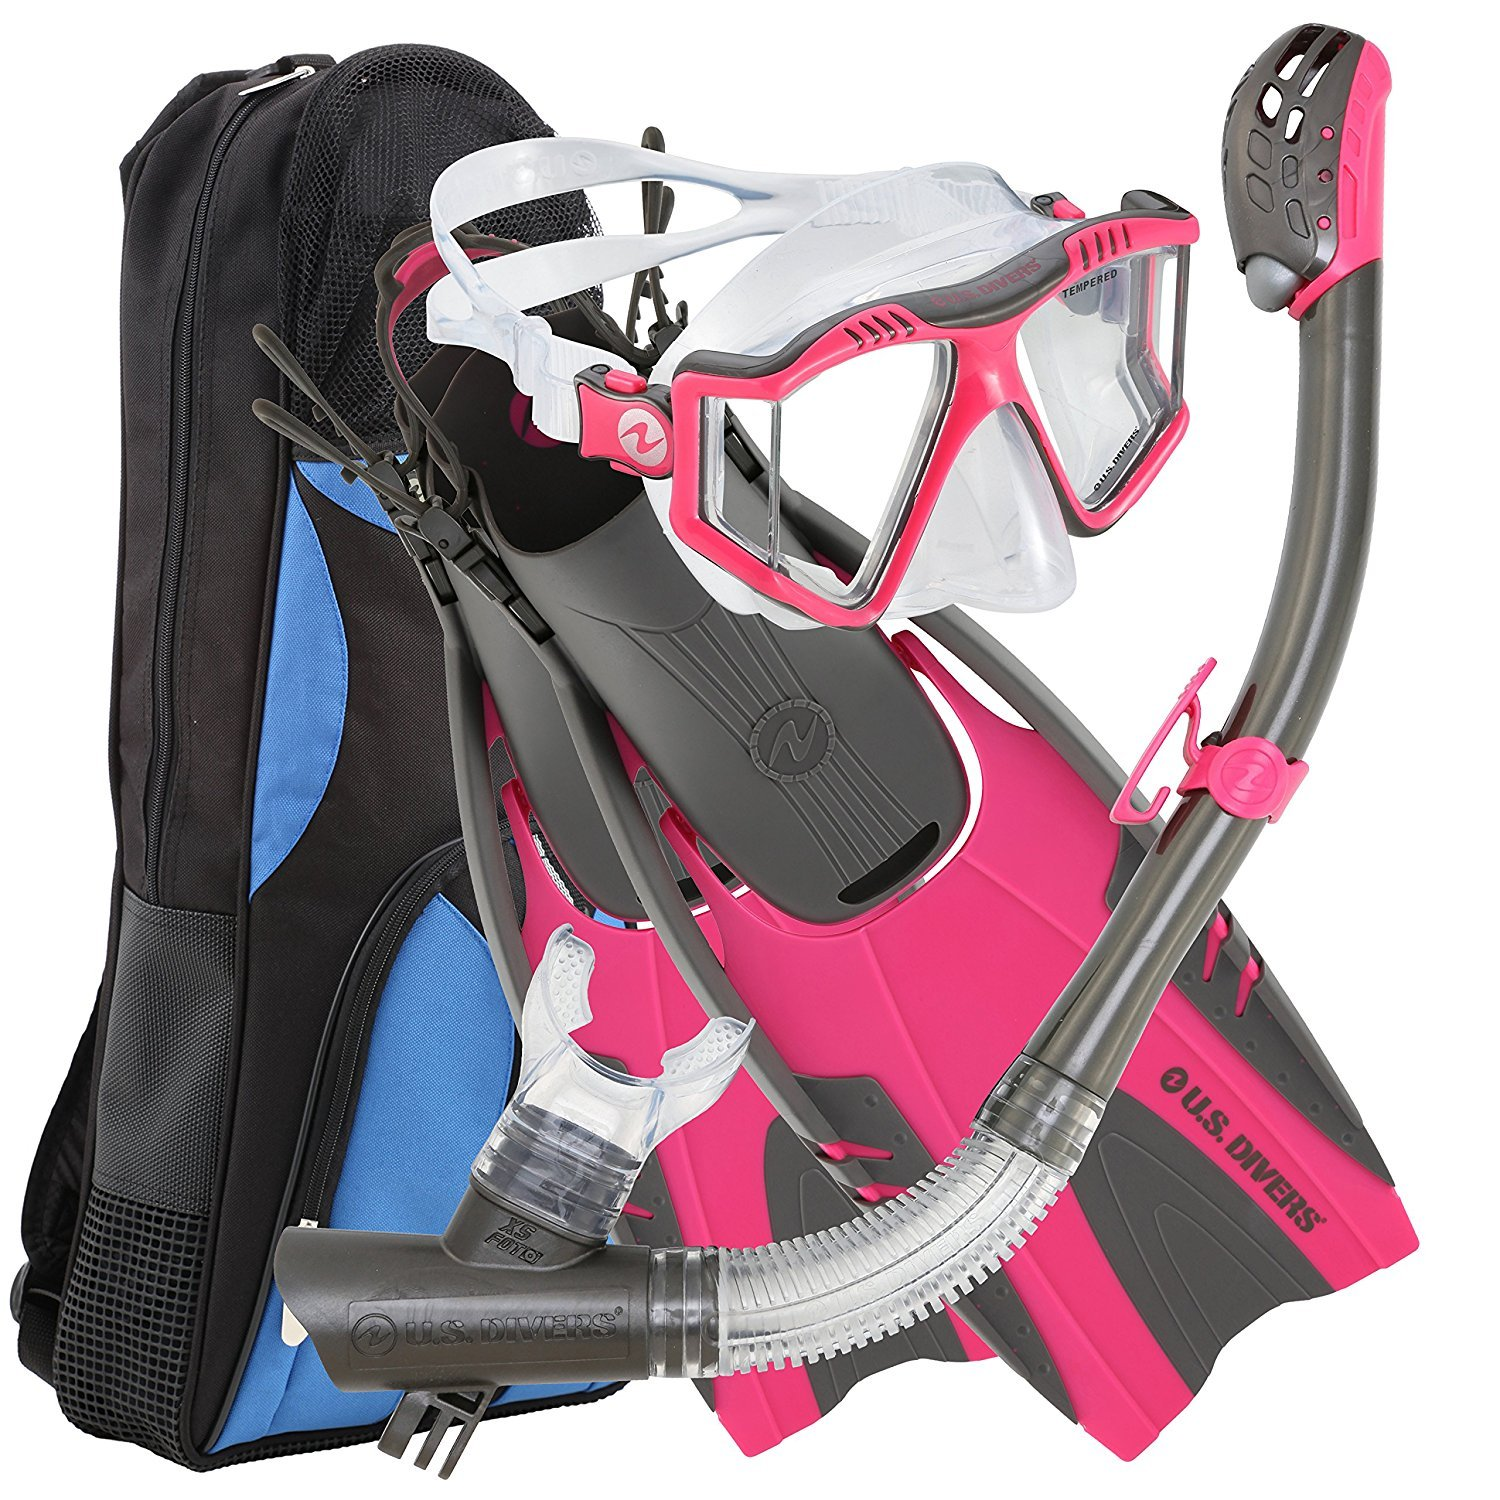 U.S. Divers Lux Platinum Panoramic View Pivot Fins Dry Top Snorkel with Durable Gear Bag, Small/Medium, Pink by U.S. Divers